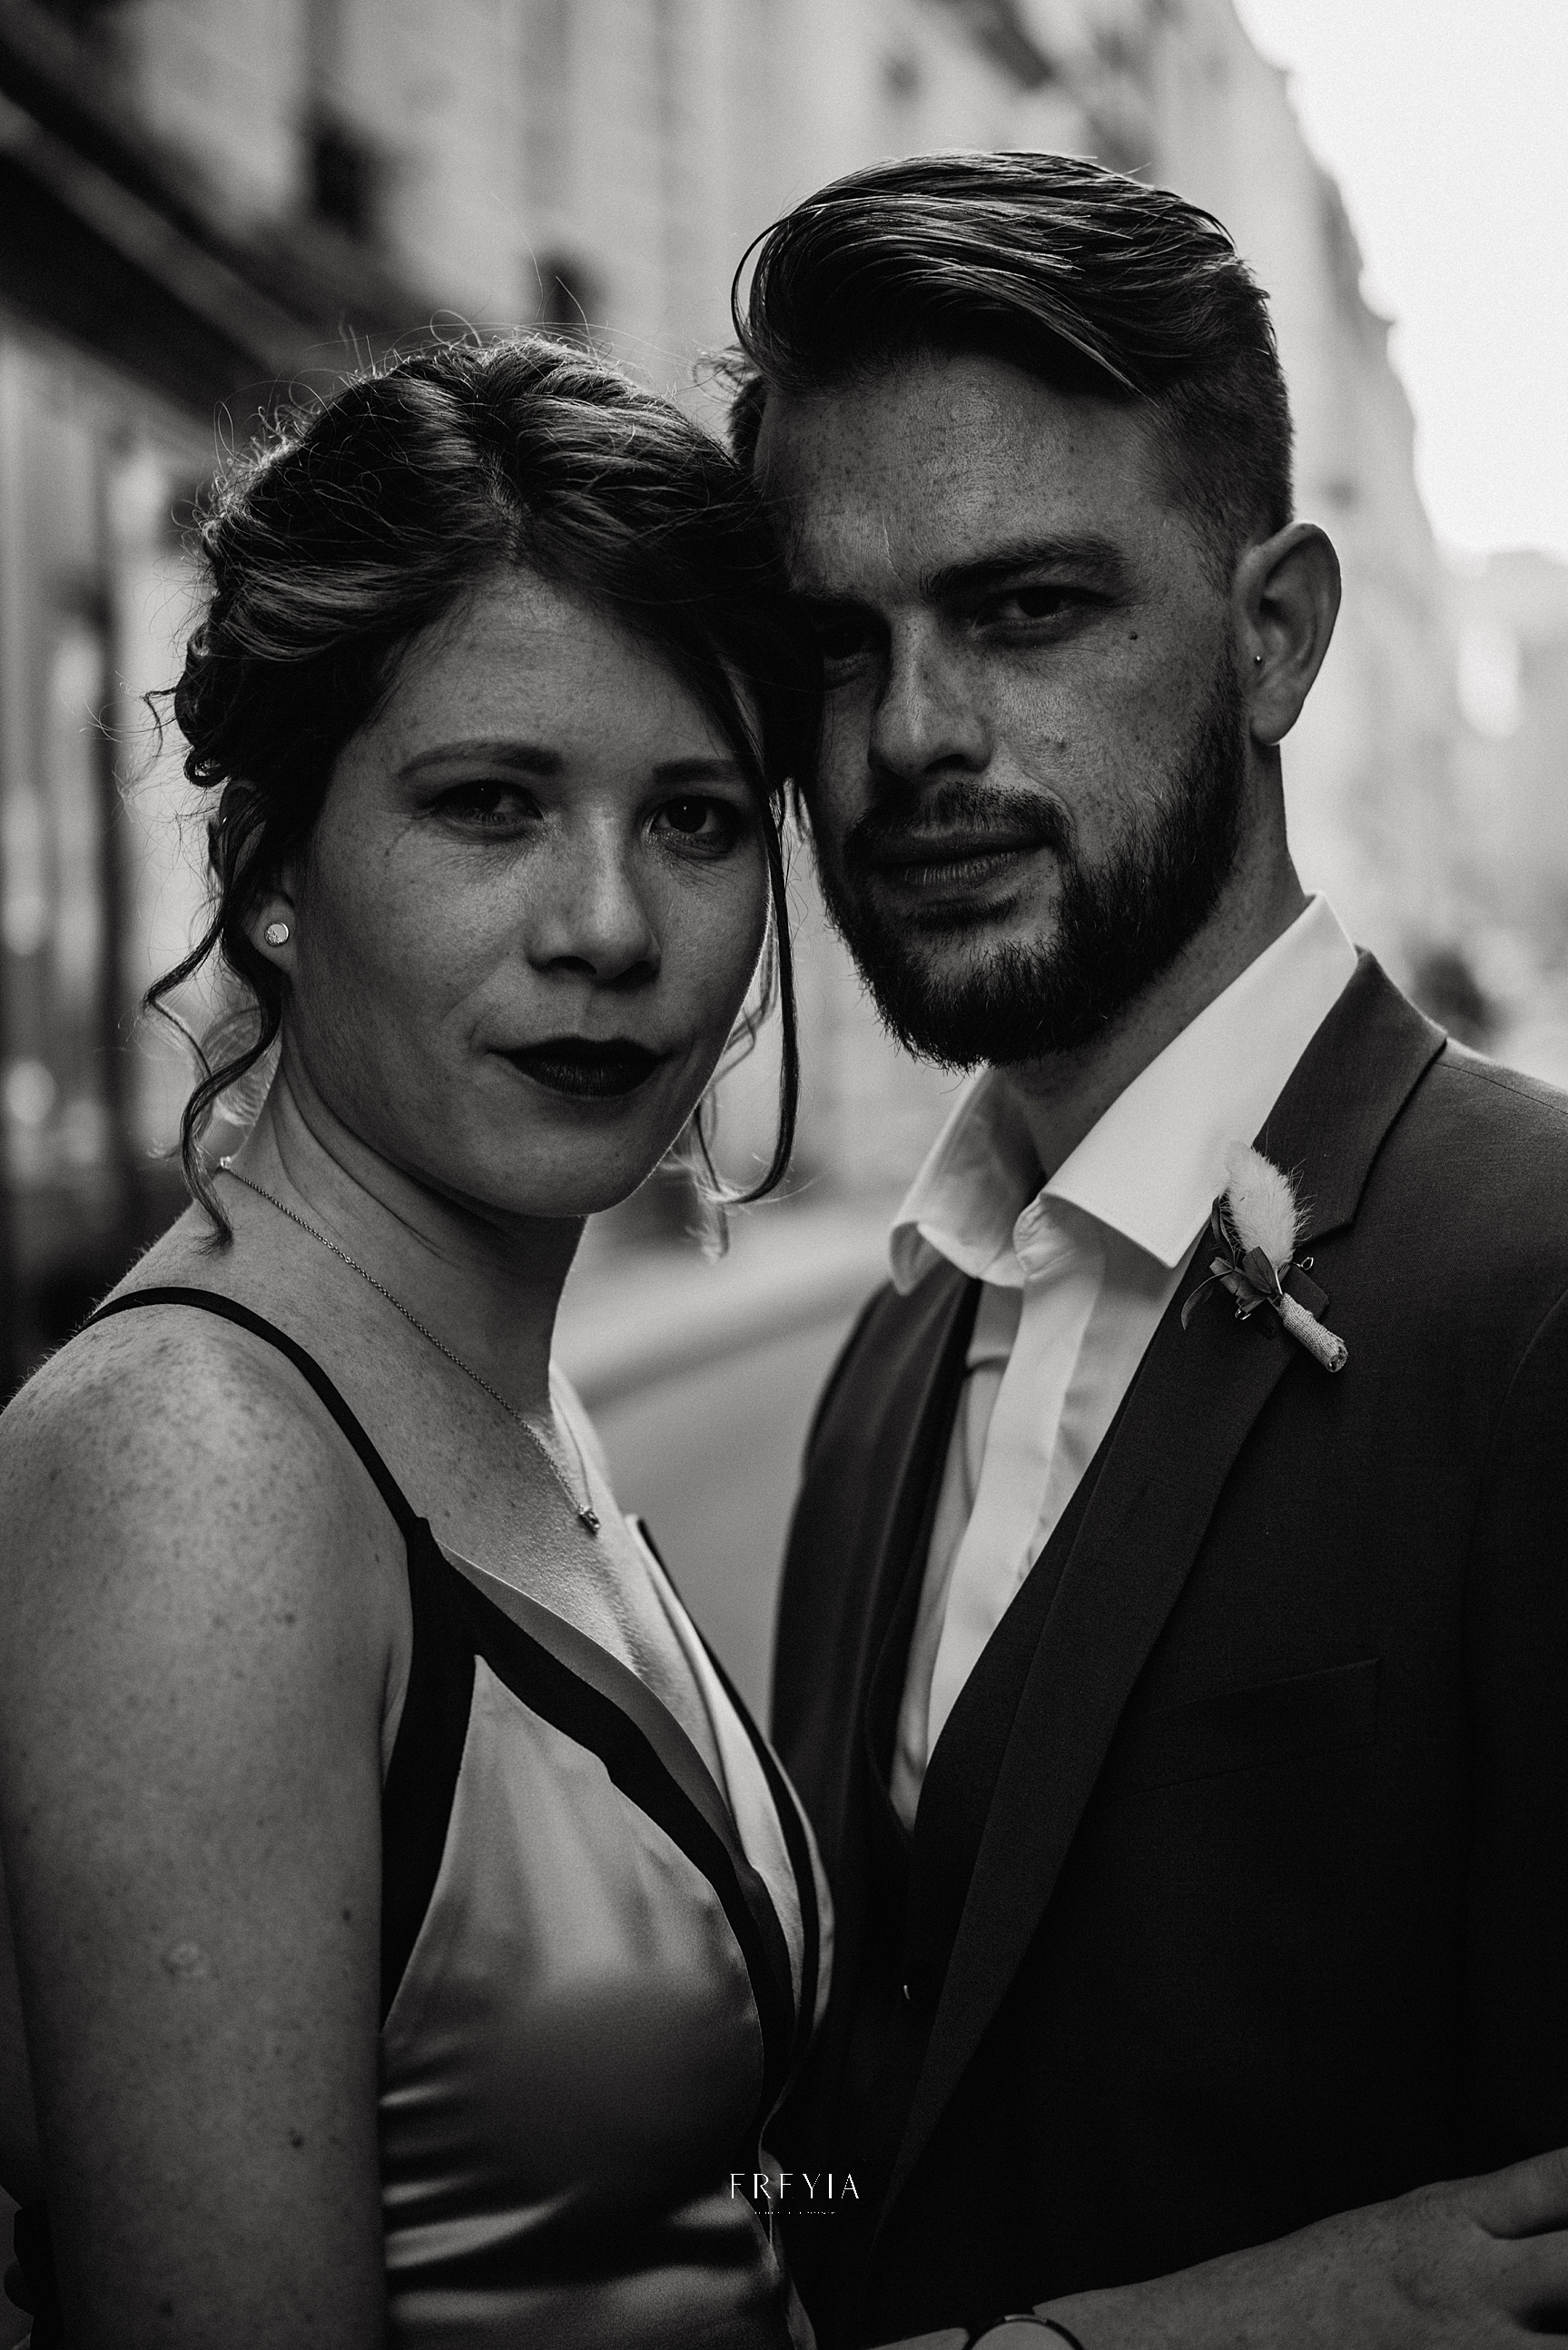 P + F |  mariage reportage alternatif moody intime vintage naturel boho boheme |  PHOTOGRAPHE mariage PARIS france destination  | FREYIA photography_-328.jpg